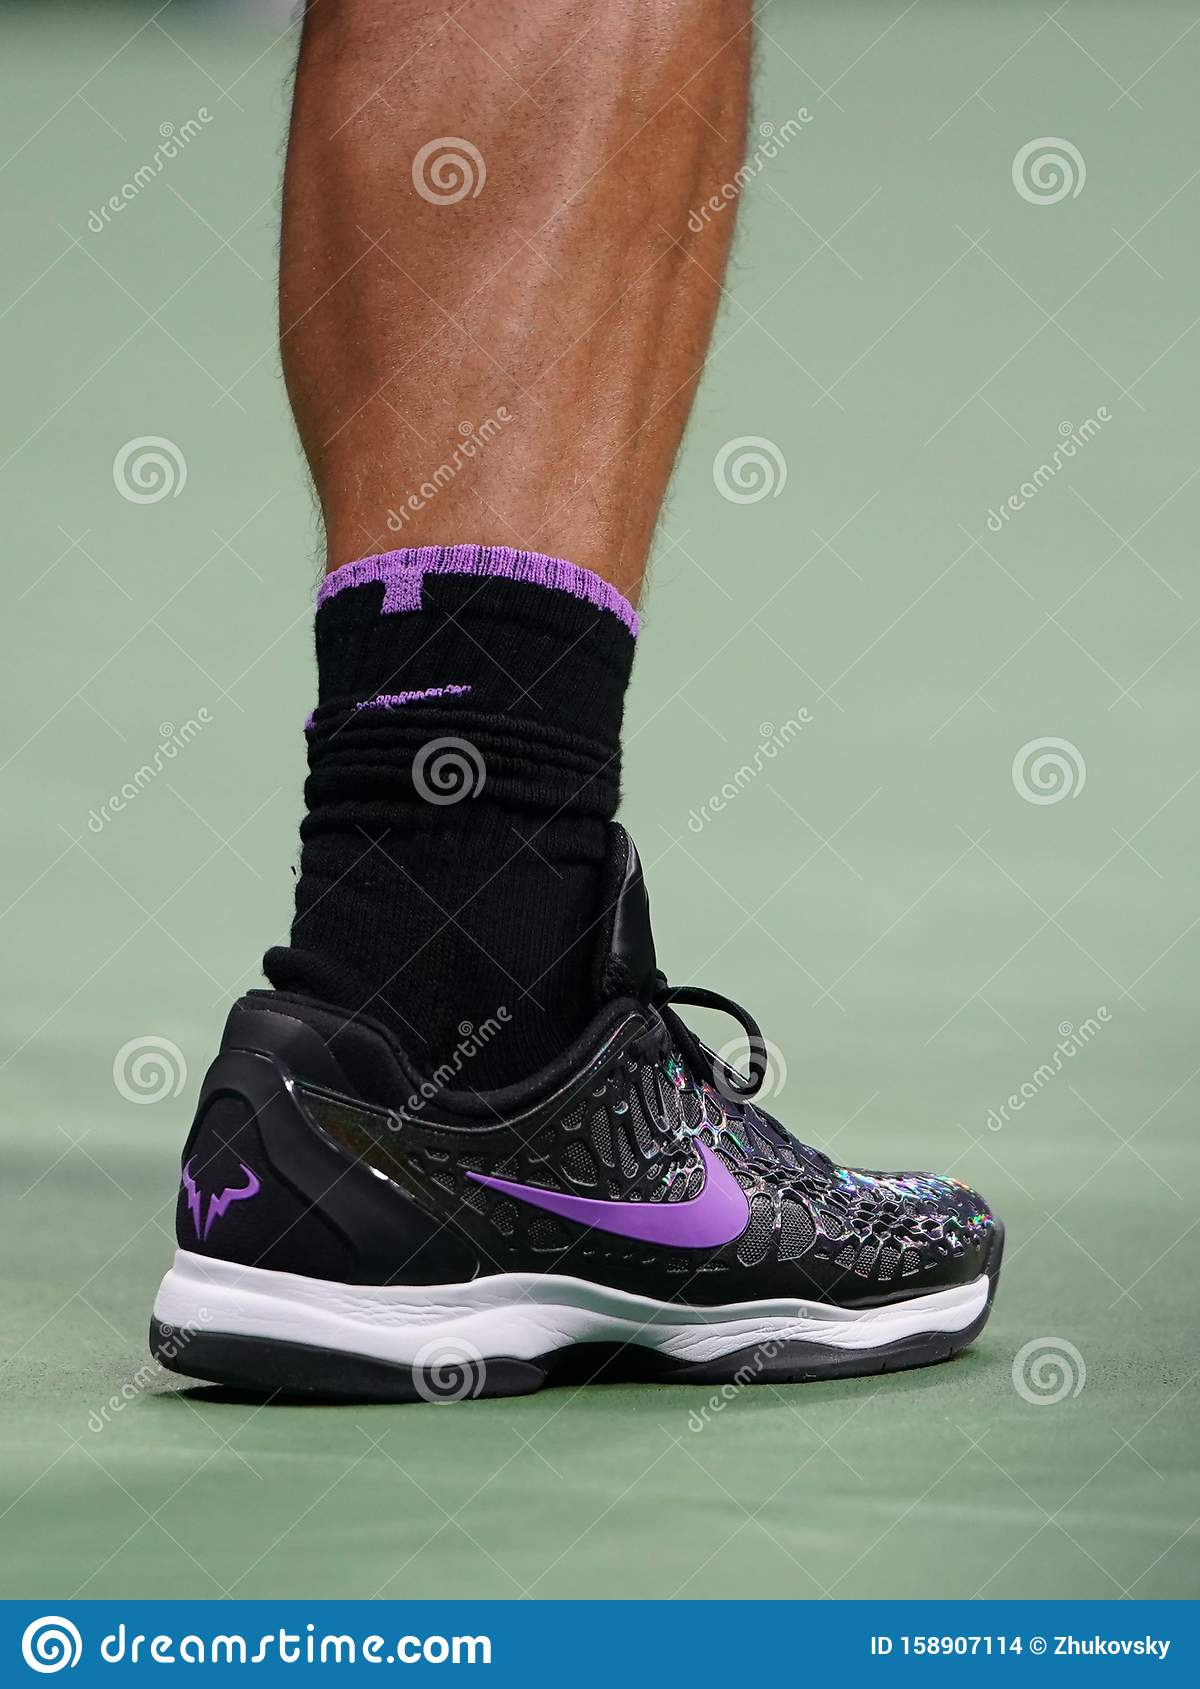 18 Time Grand Slam Champion Rafael Nadal Of Spain Wears Custom Nike Tennis Shoes During The 2019 Us Open First Round Match Editorial Stock Image Image Of King Competition 158907114